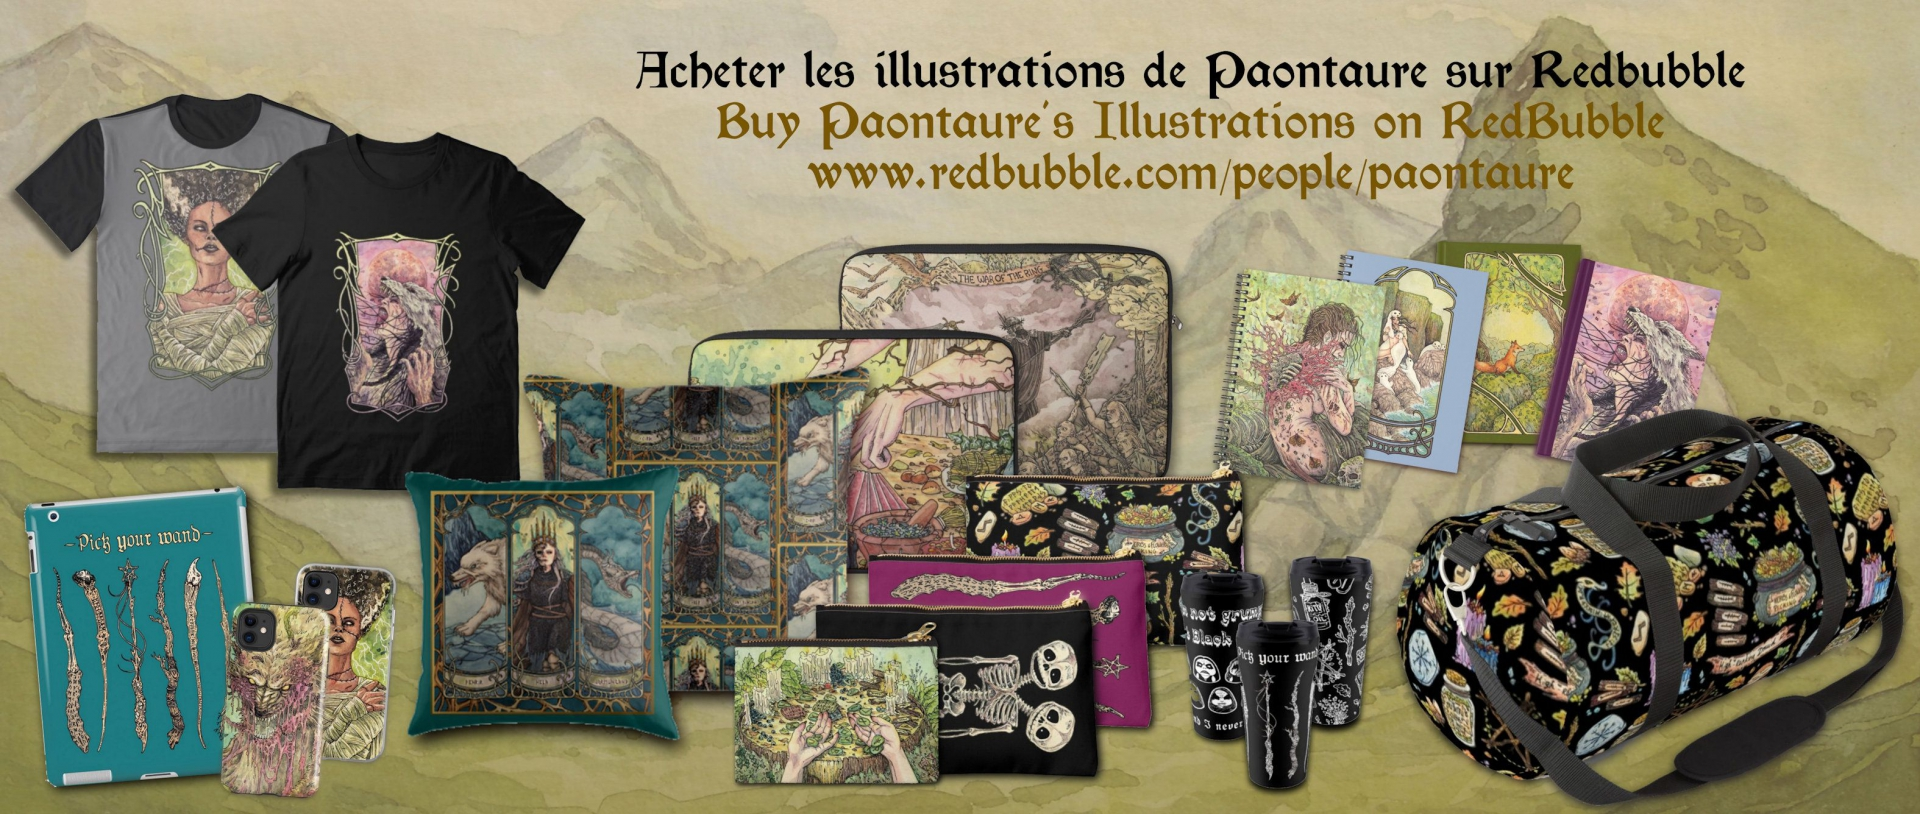 Paontaure on Redbubble